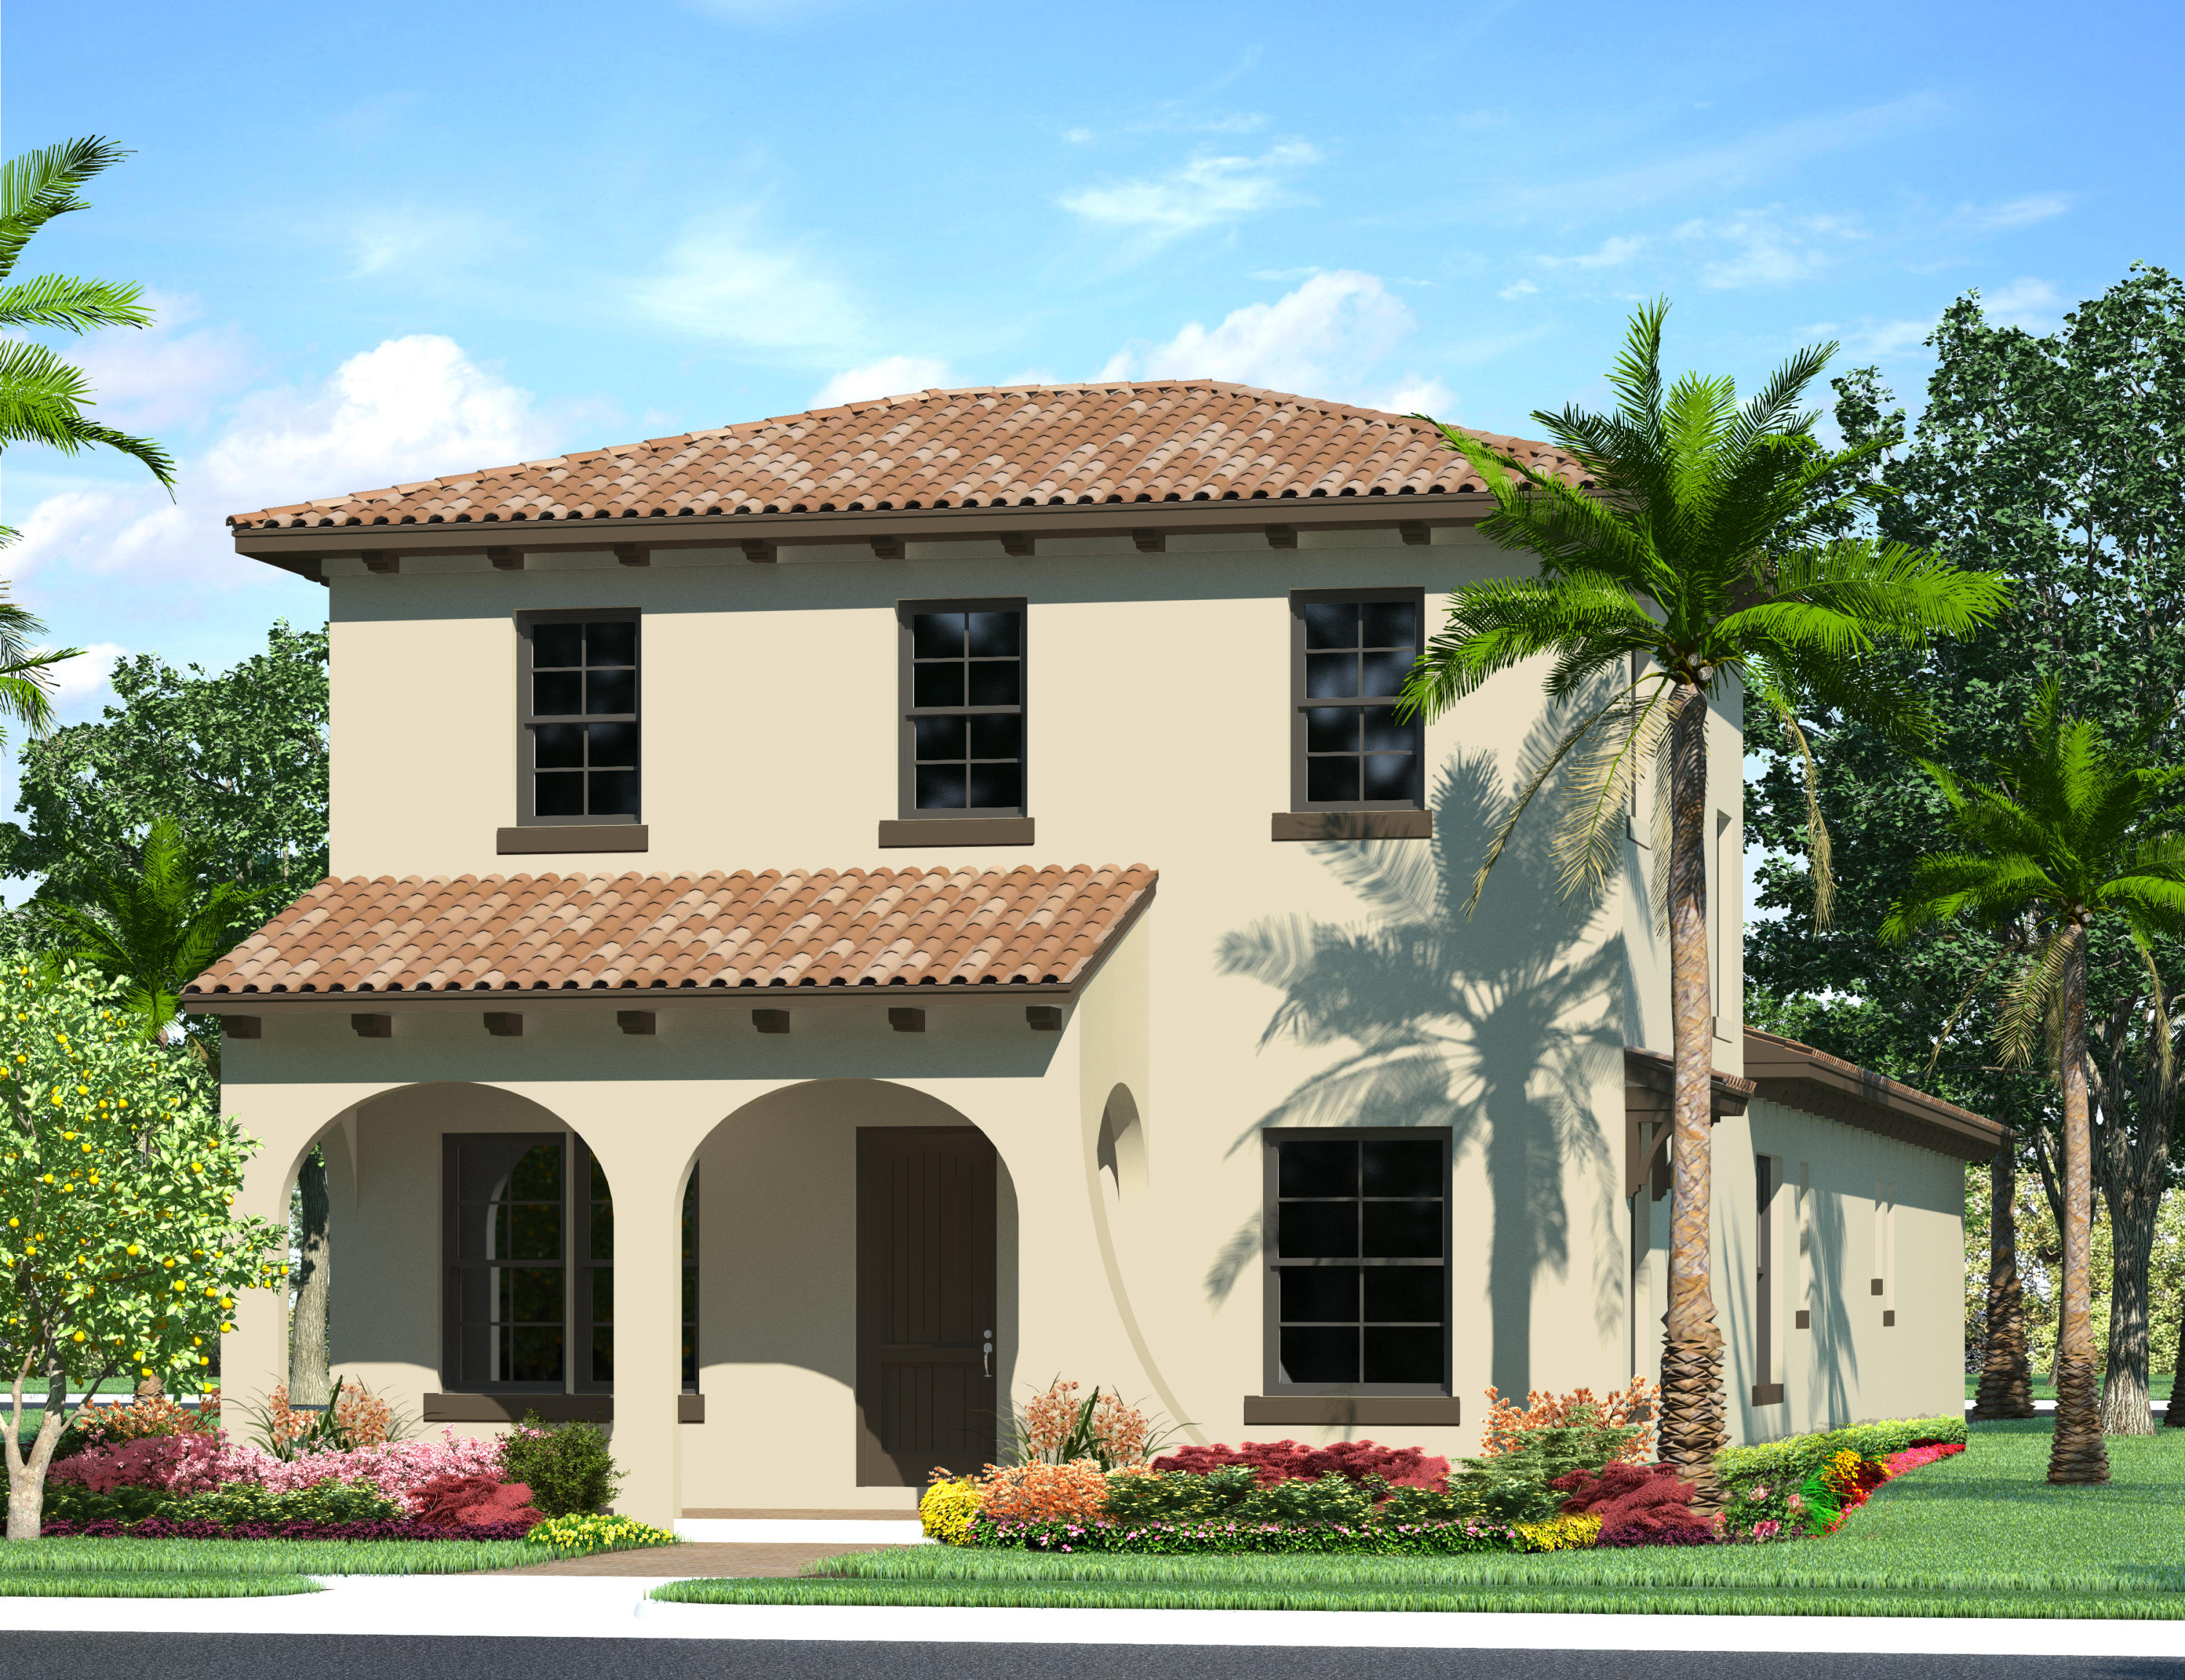 New Home for sale at 4072 Faraday Way in Palm Beach Gardens